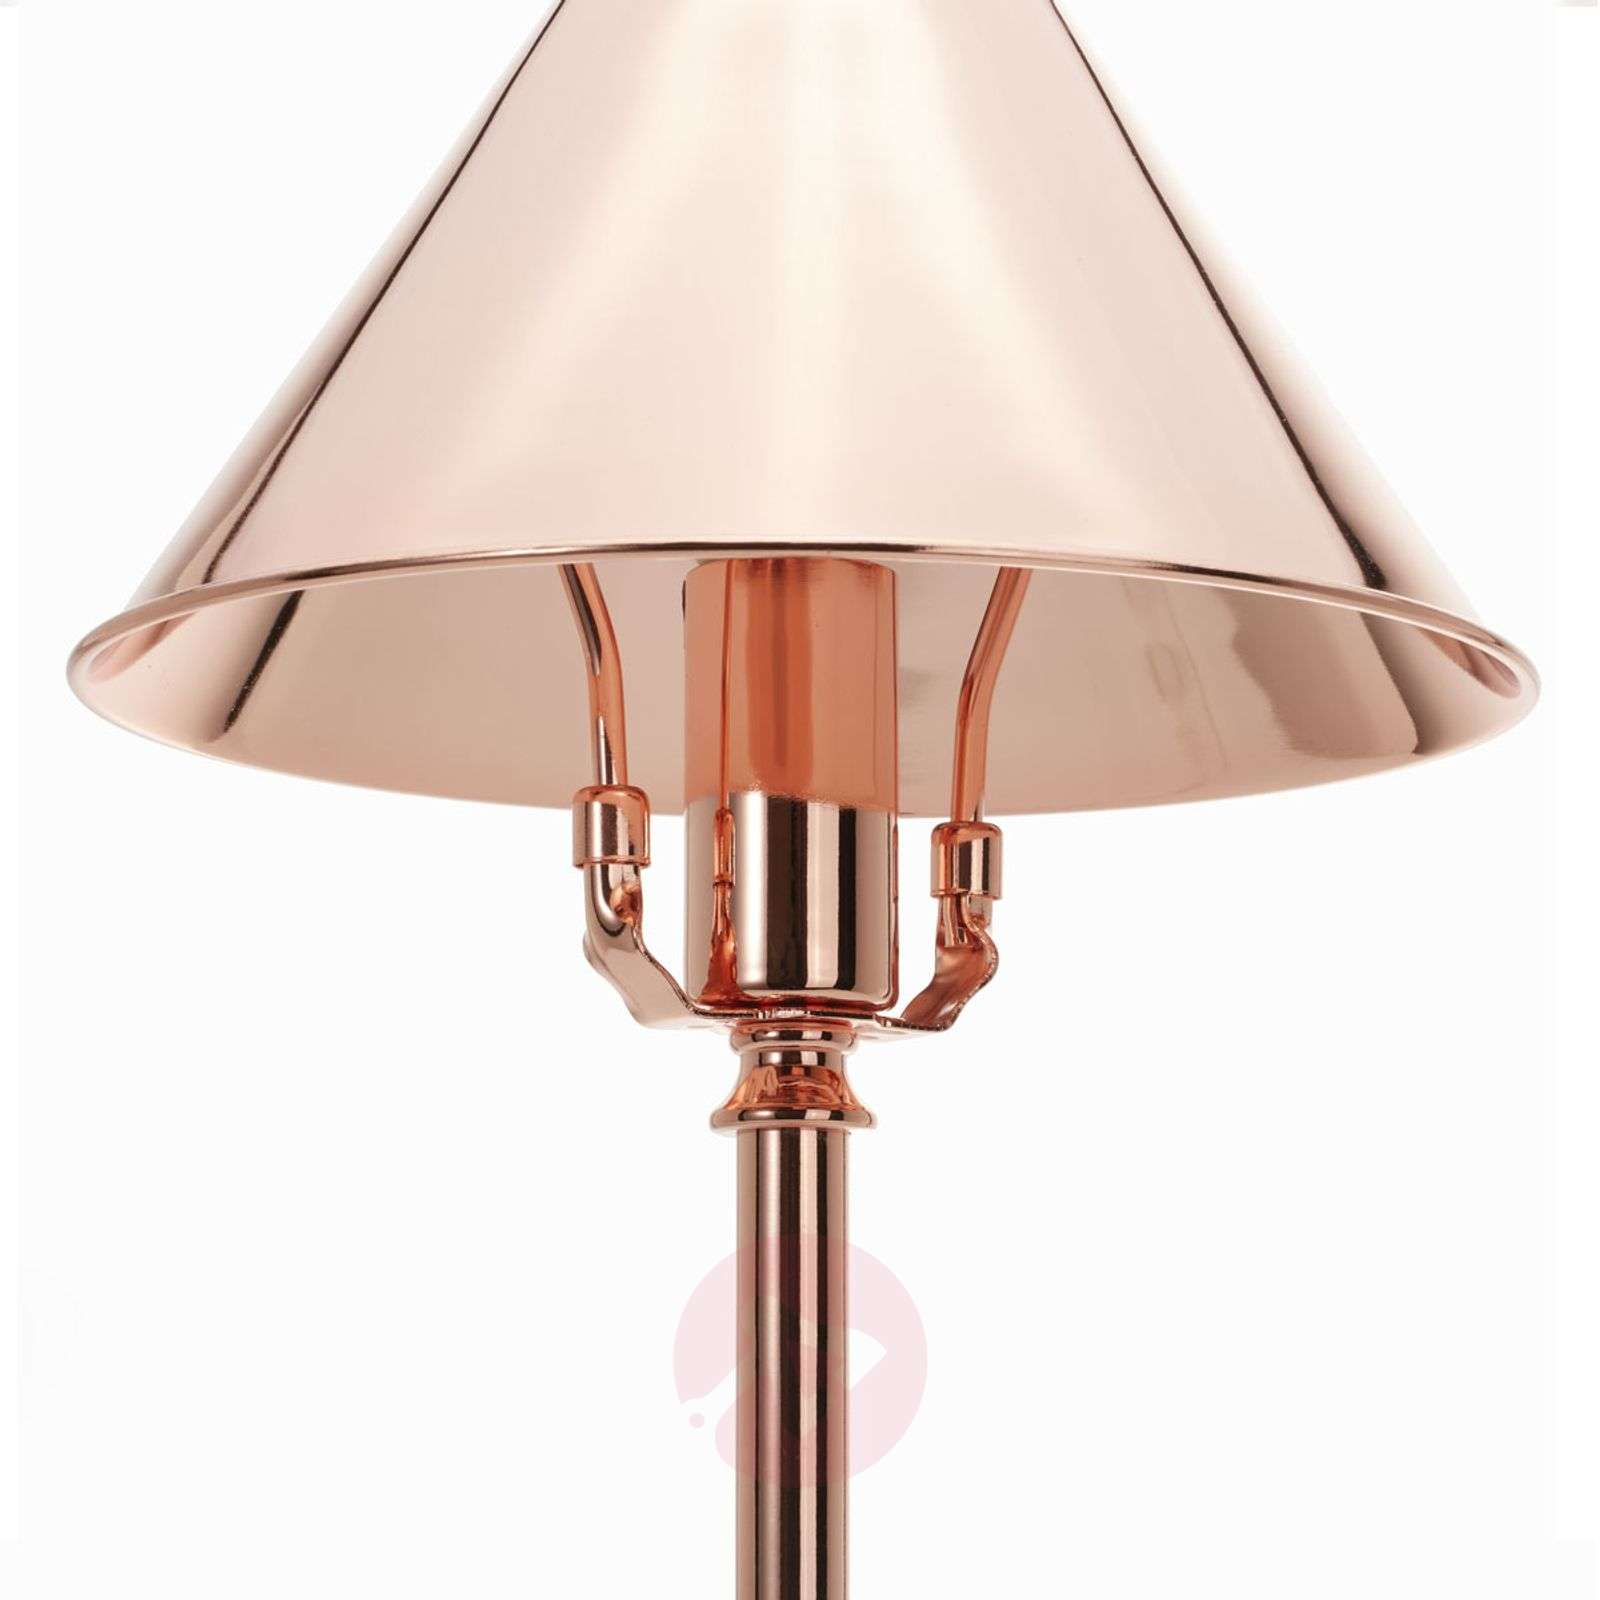 Compact Provence table lamp in copper-3048445-01